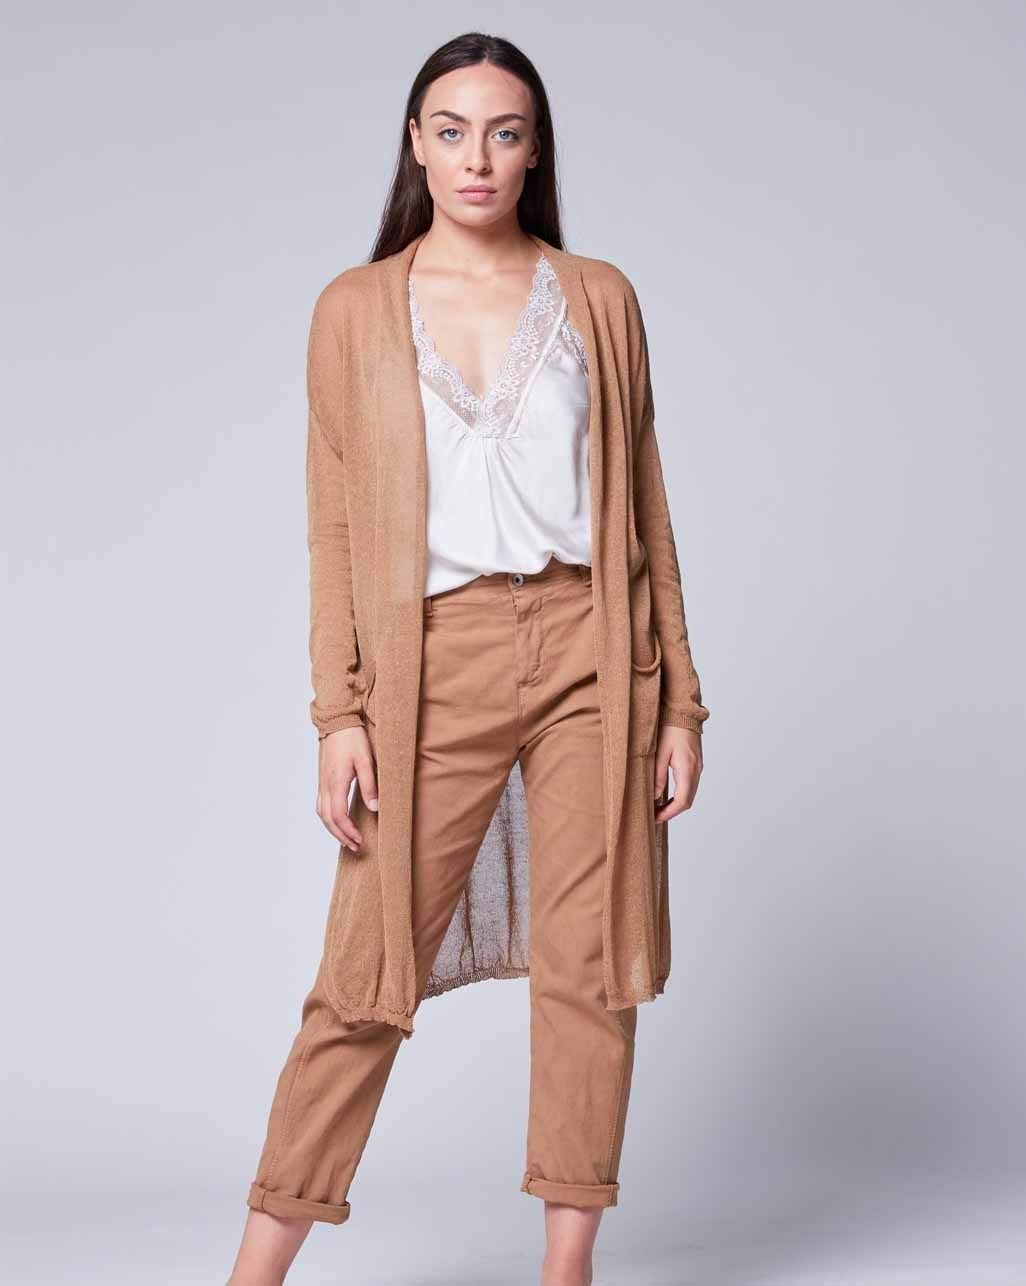 Sheer Gradient Camel Cardigan- Baci